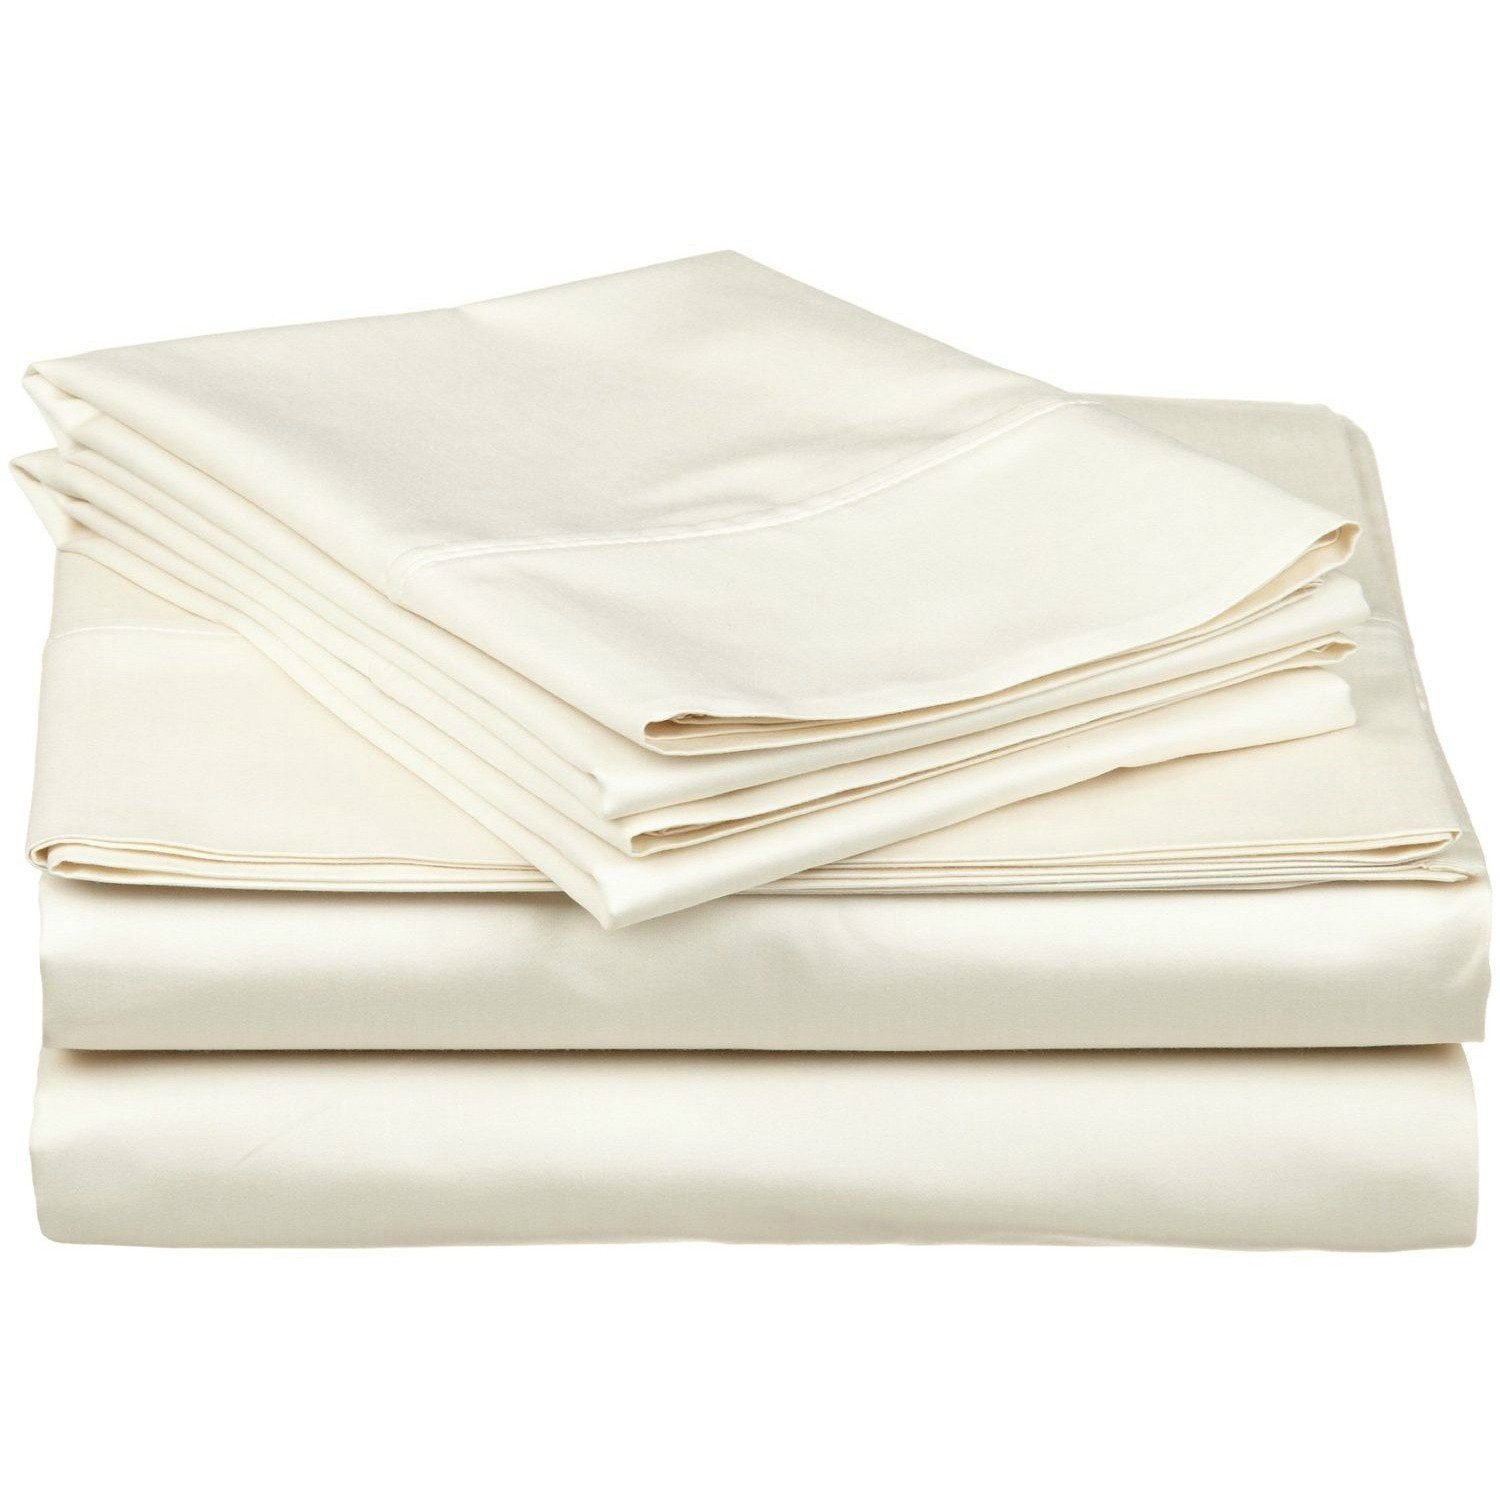 4 Piece Full Ivory Bed Sheet Set, Ultra cozy, super soft, lightweight, durable, satiny smooth, Fully Elasticized, Sateen weave with 300 thread count, Off White, Cotton